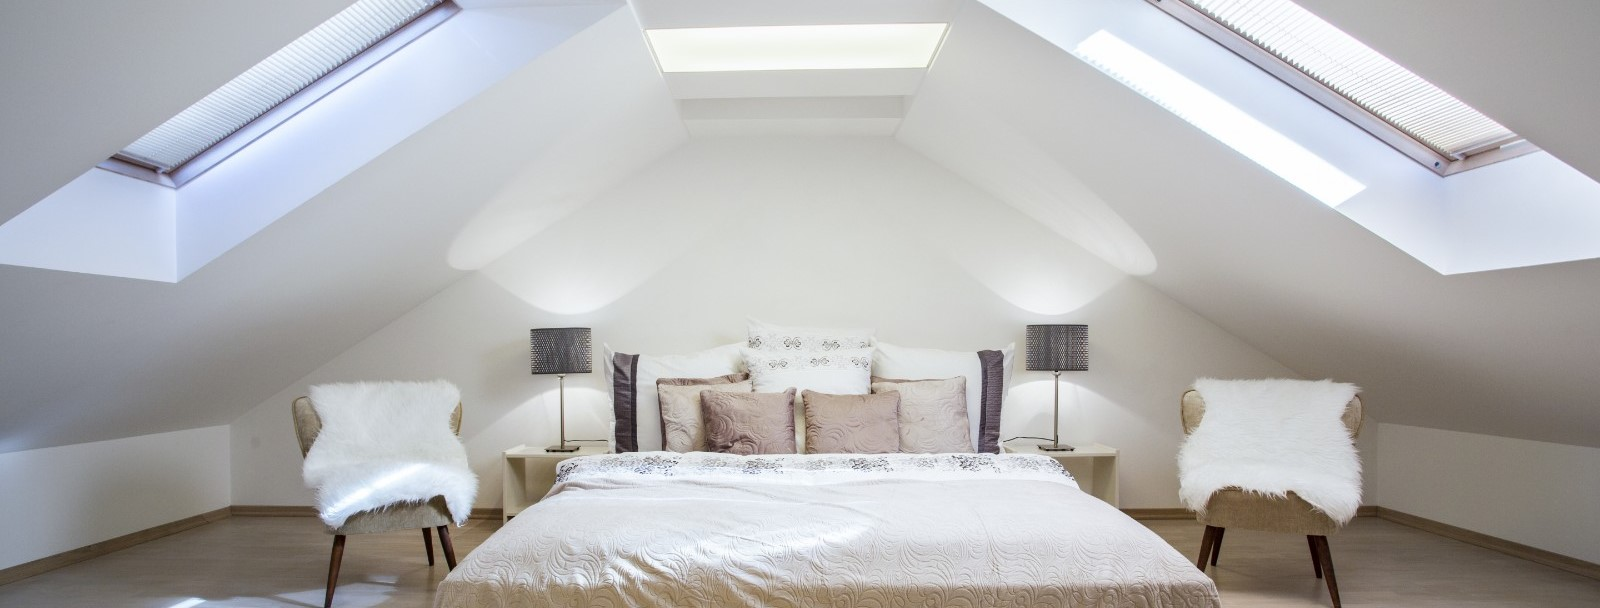 Loft conversions in Epsom